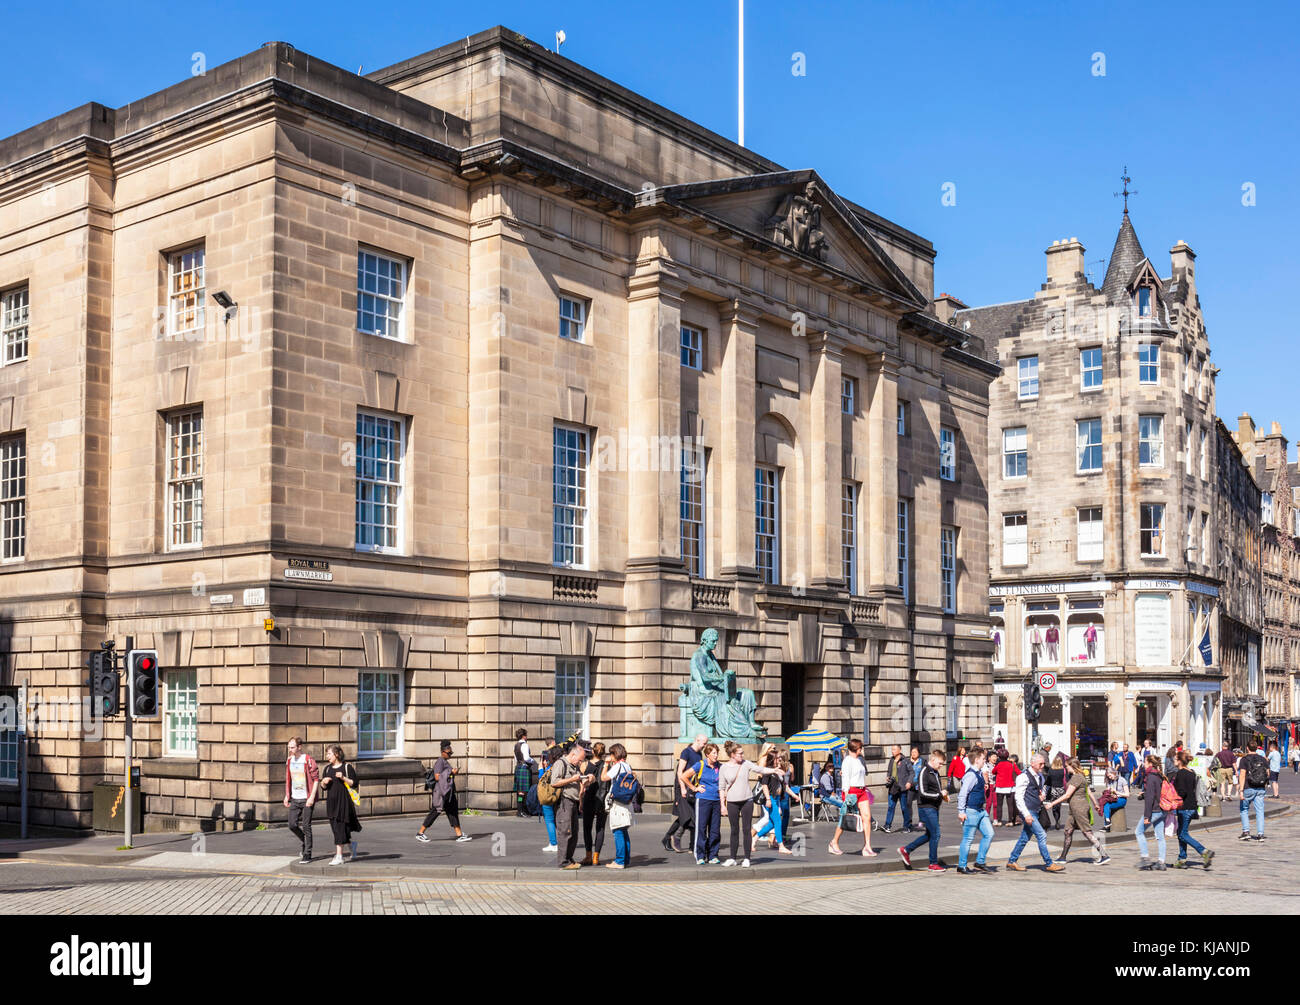 edinburgh-high-court-of-justiciary-royal